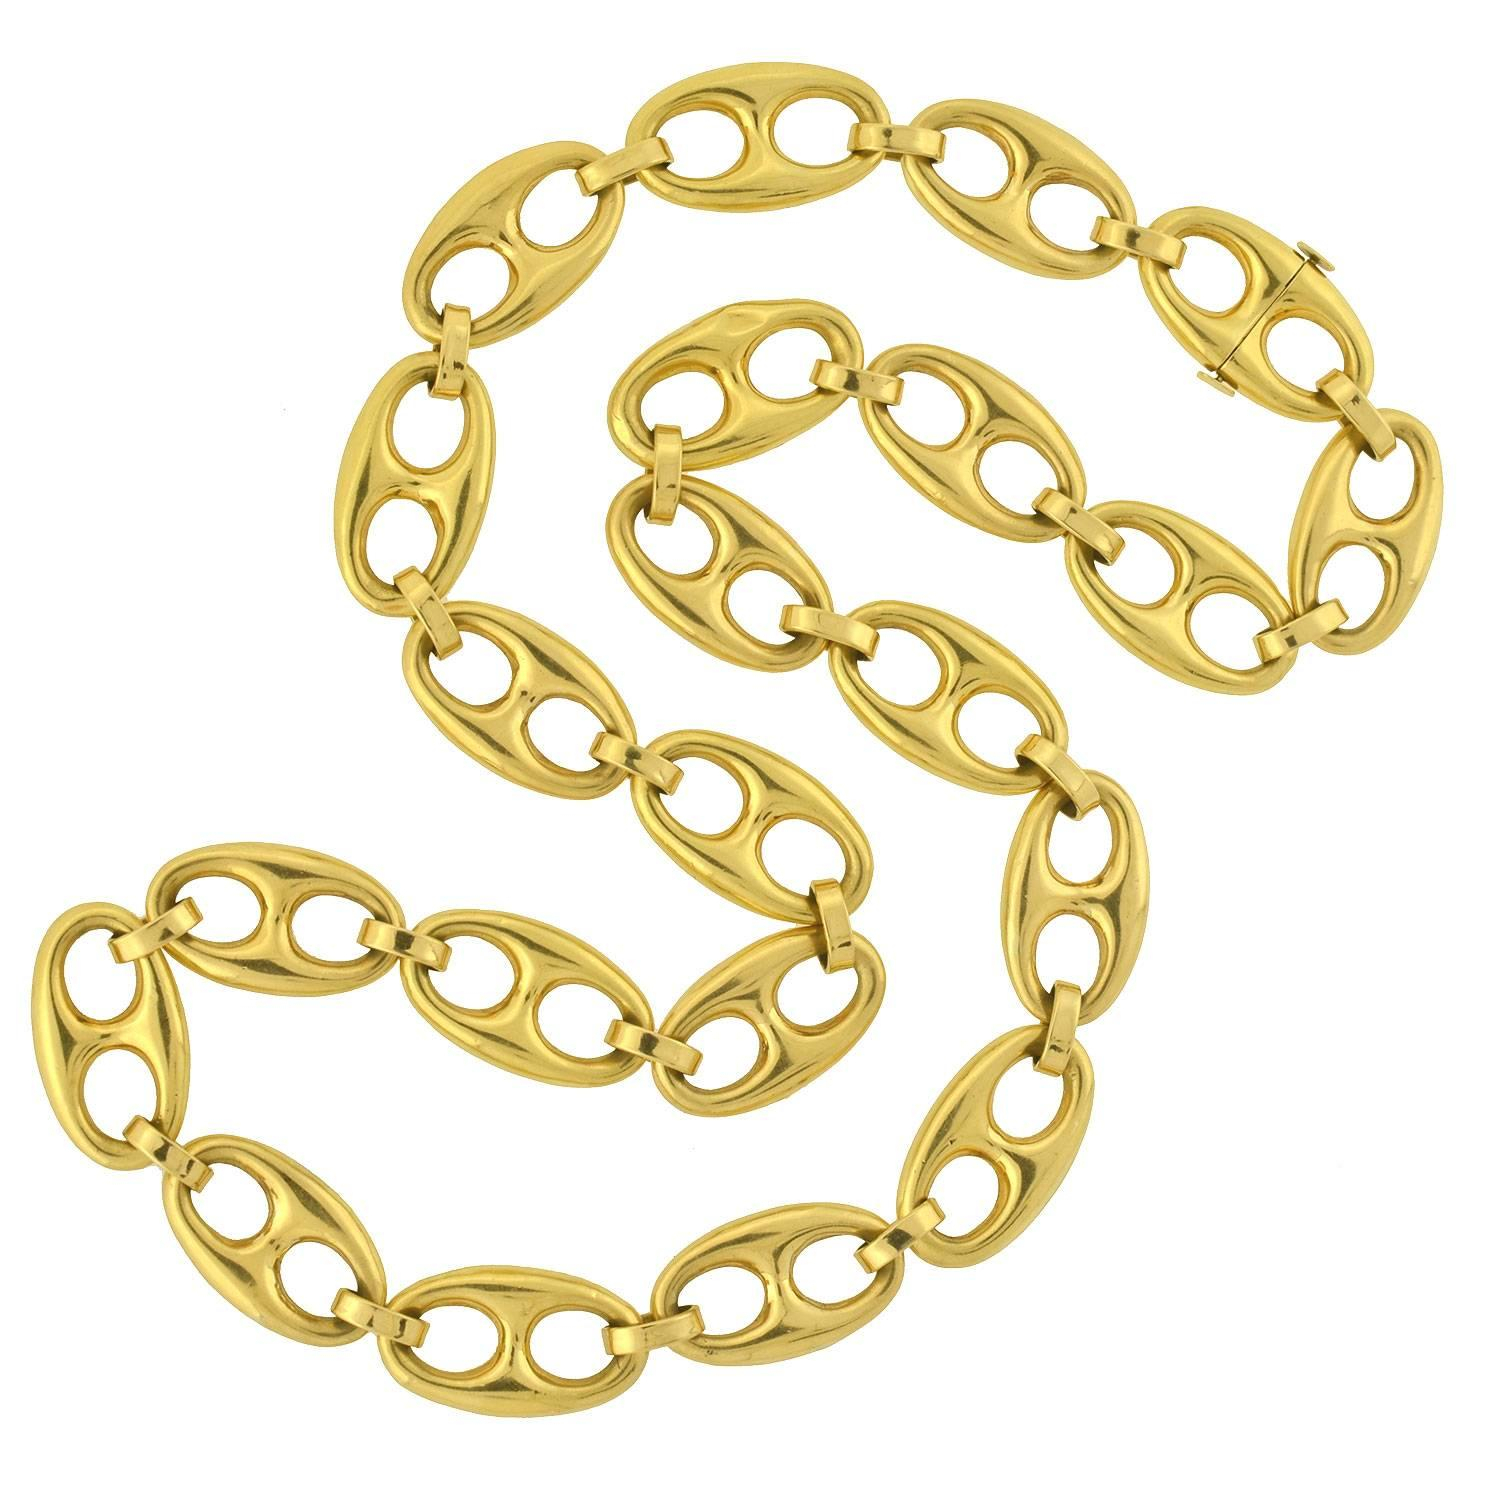 Contemporary Anchor Link Gold Chain Necklace In Most Popular Classic Anchor Chain Necklaces (View 11 of 25)